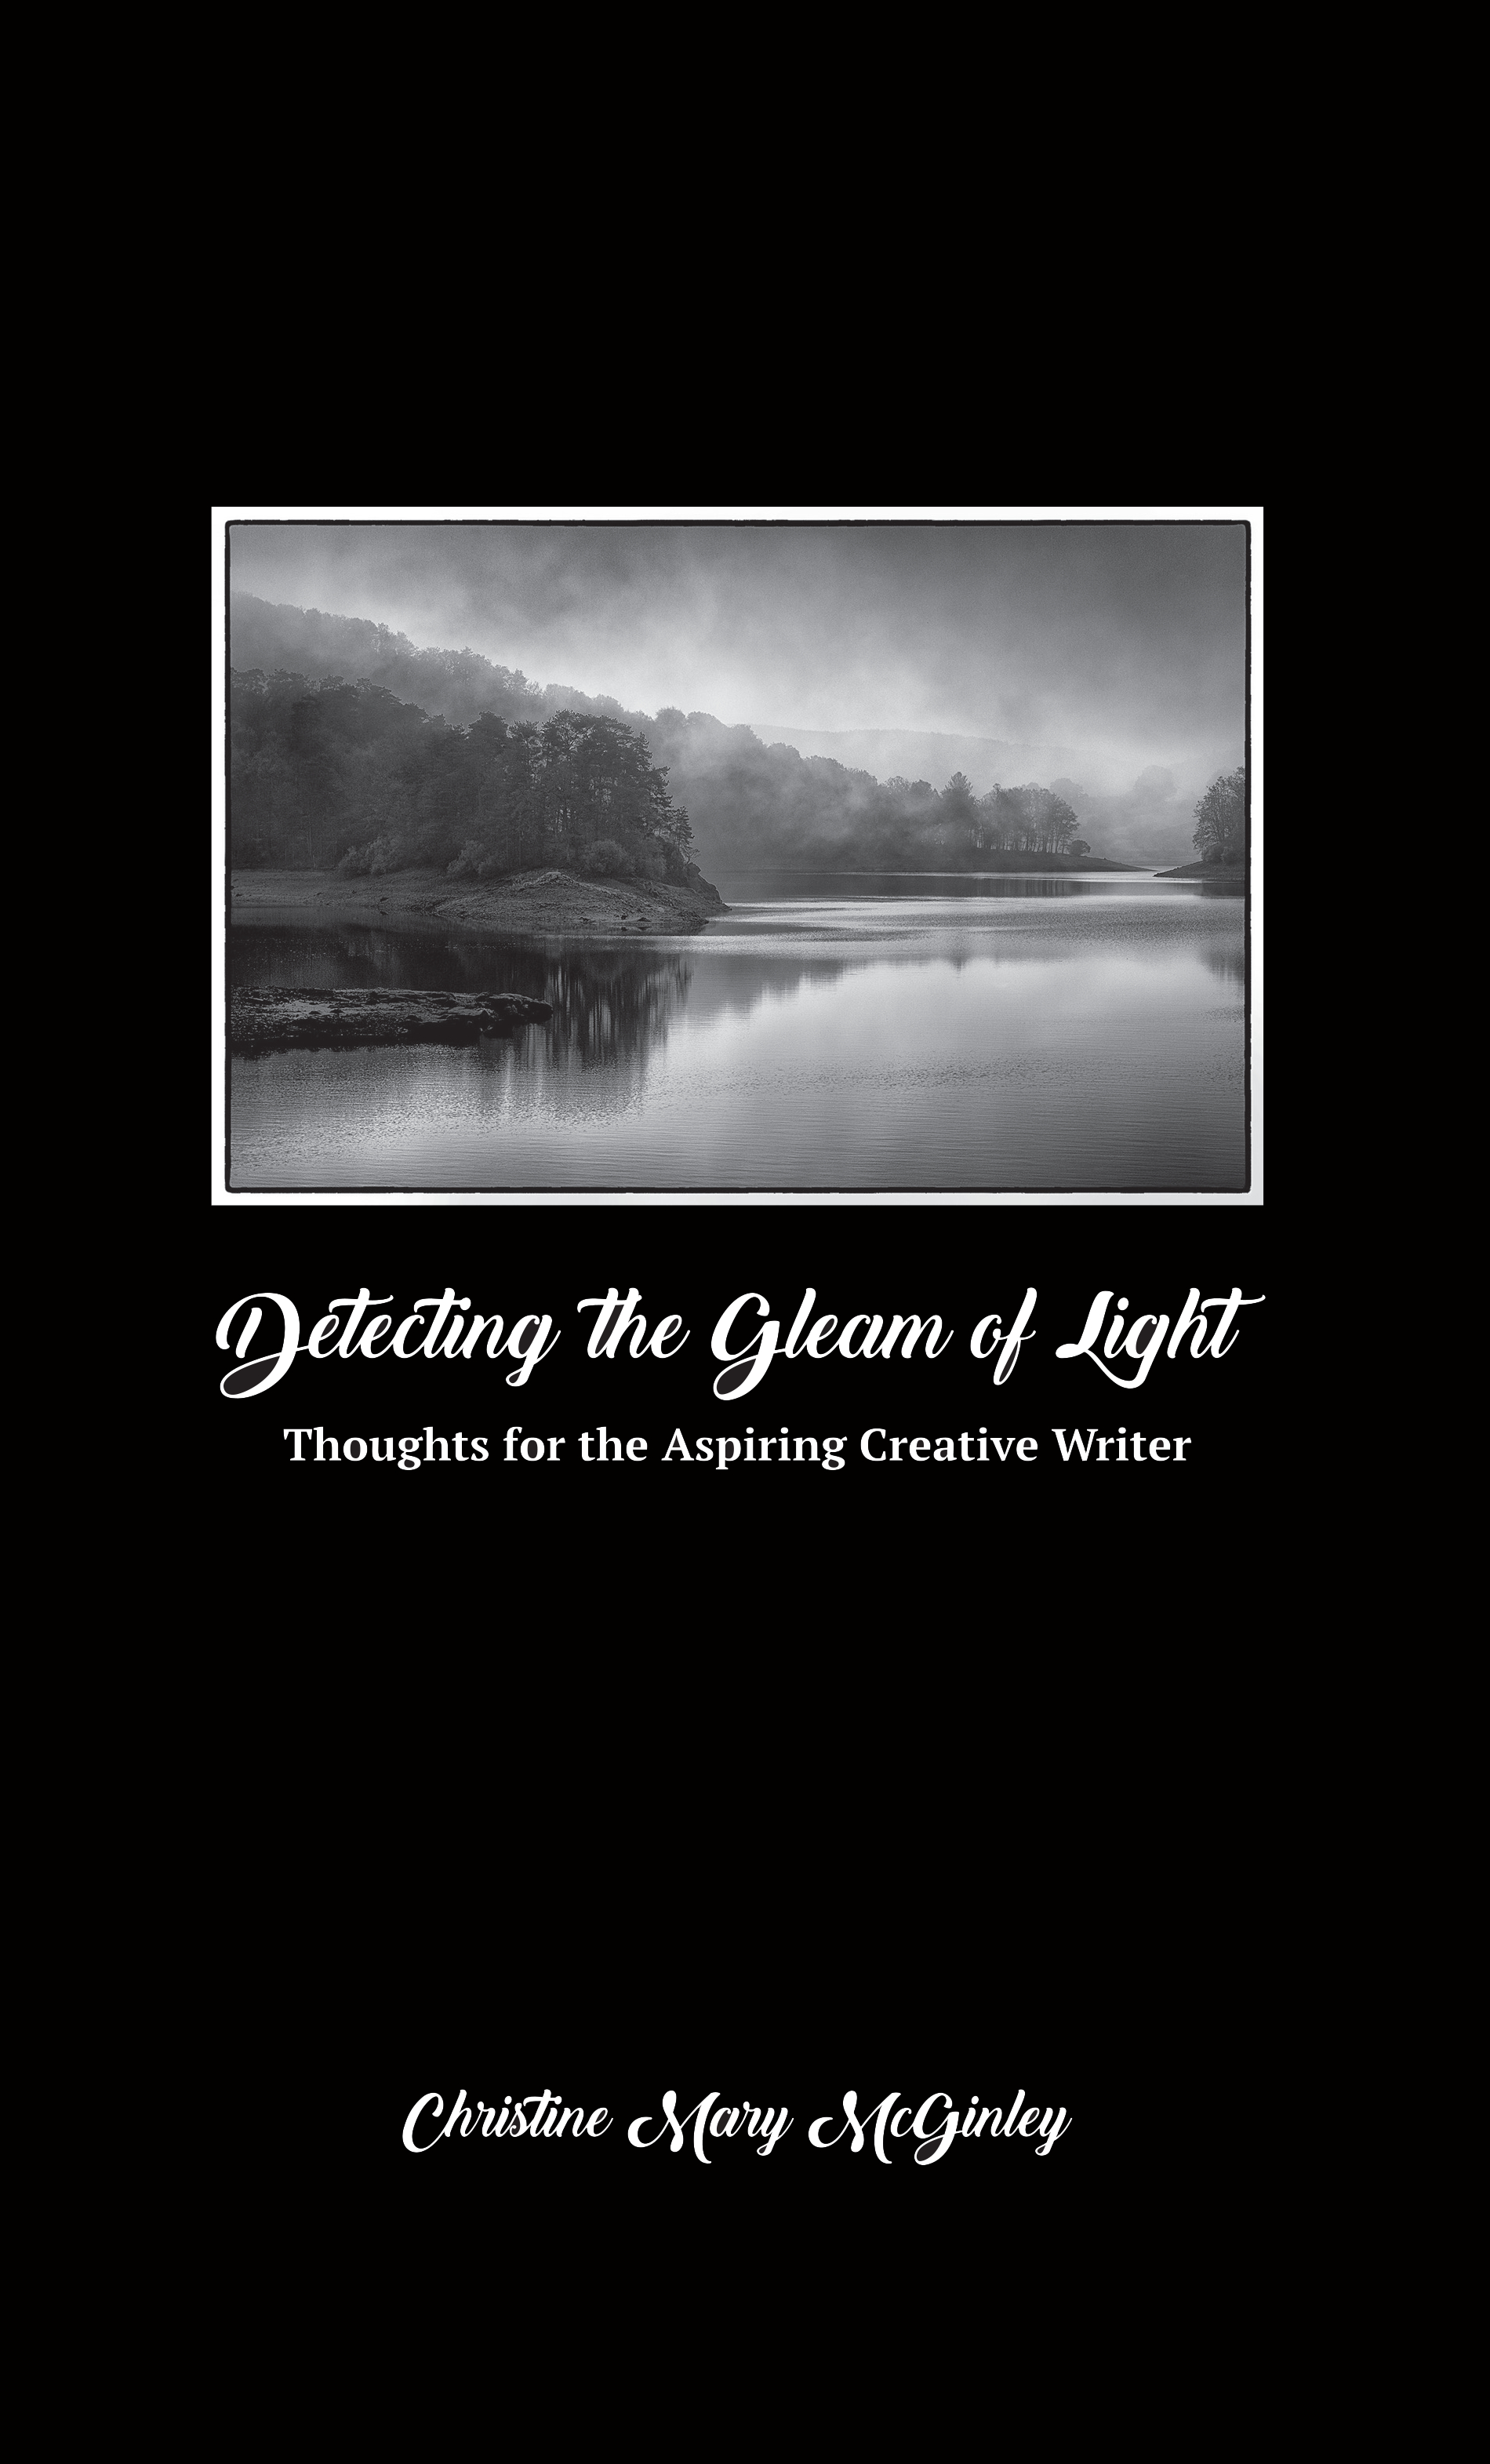 detecting the gleam of light by Christine Mary McGinley